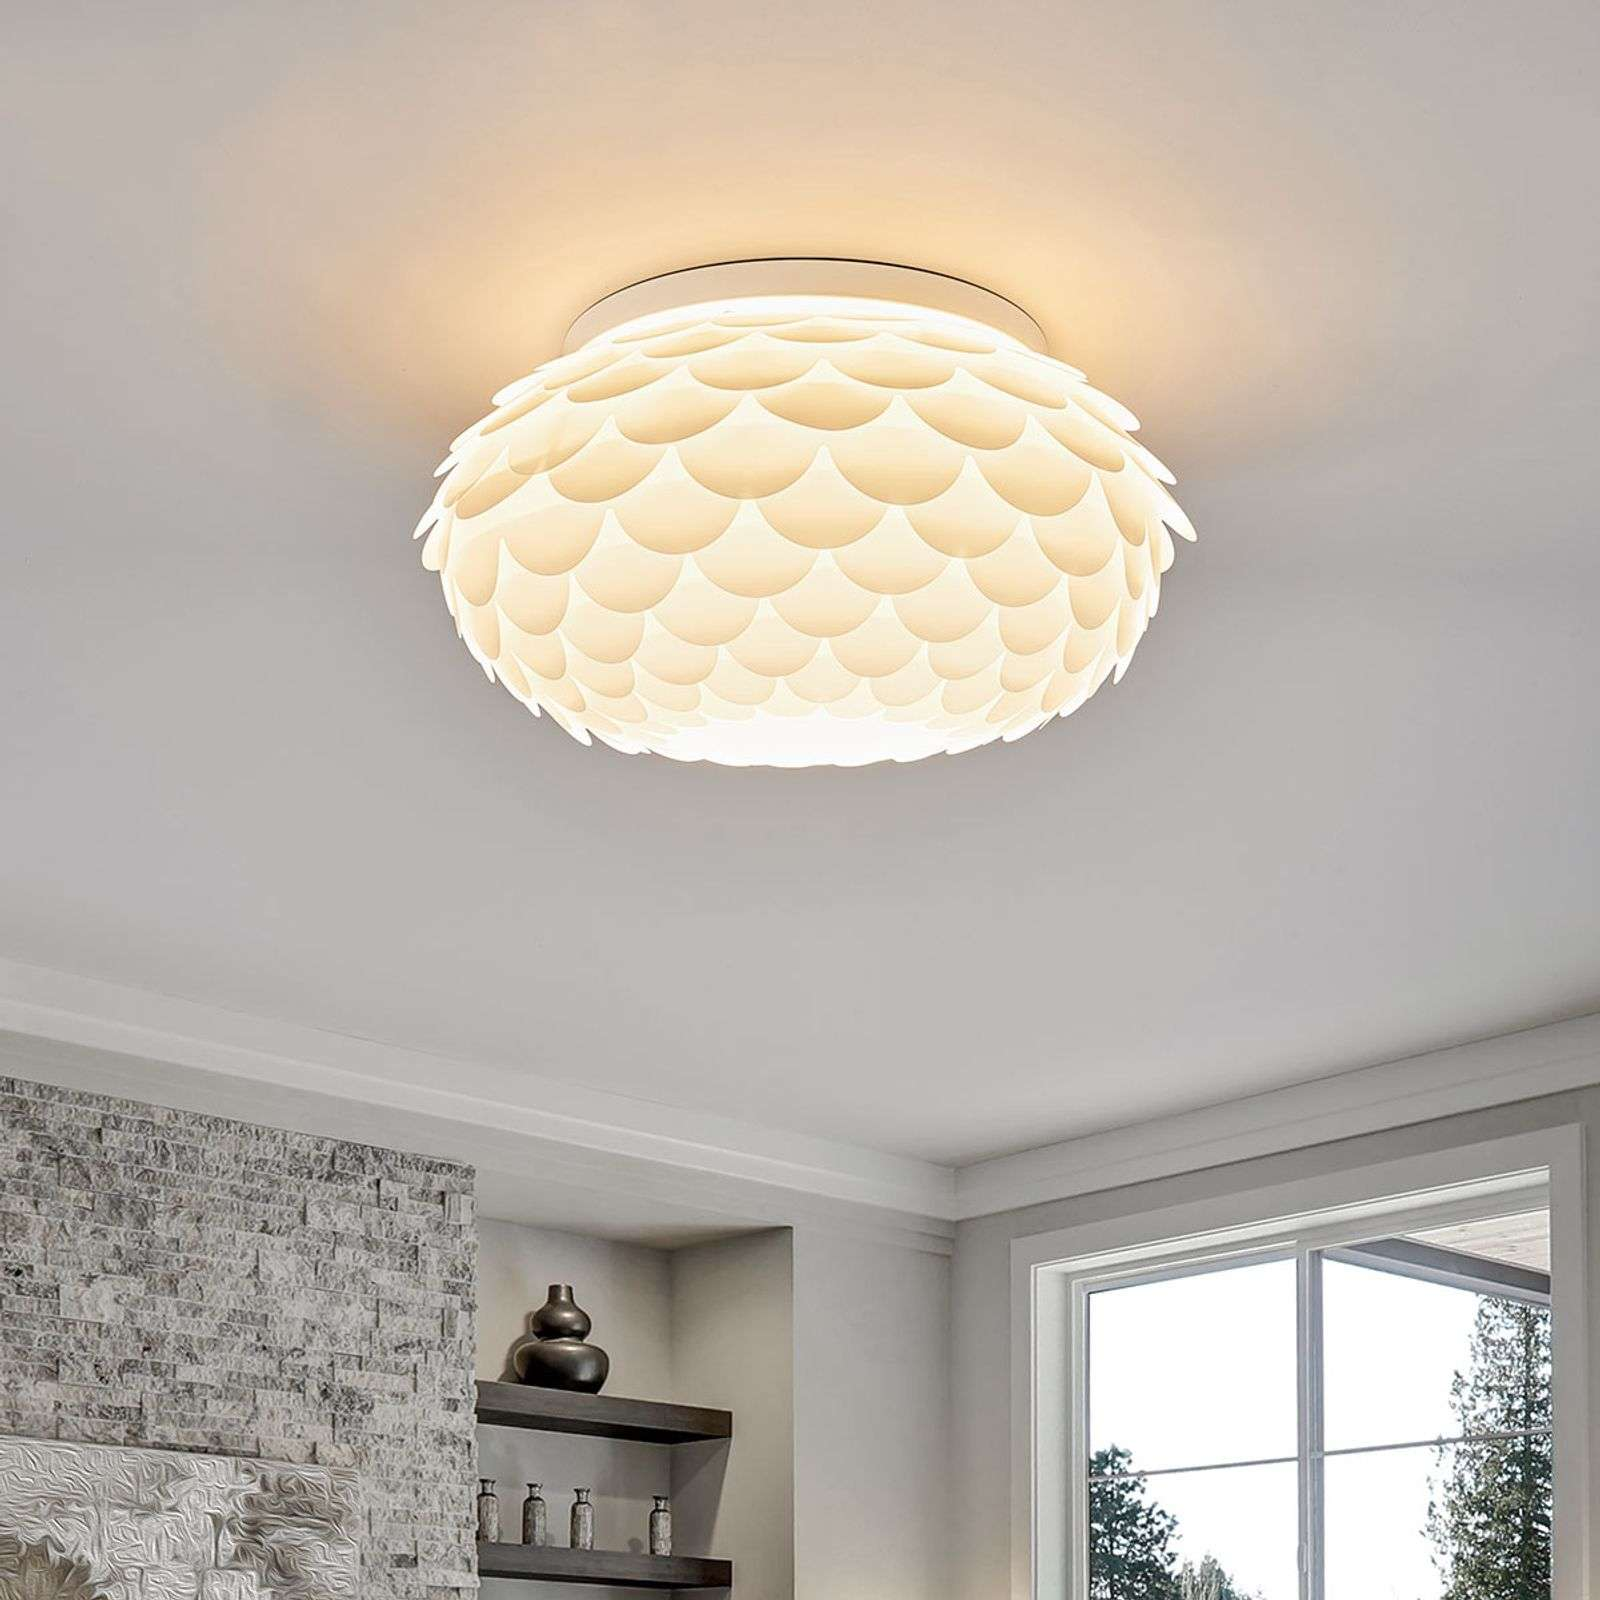 Plafondlamp Marees in wit, rond